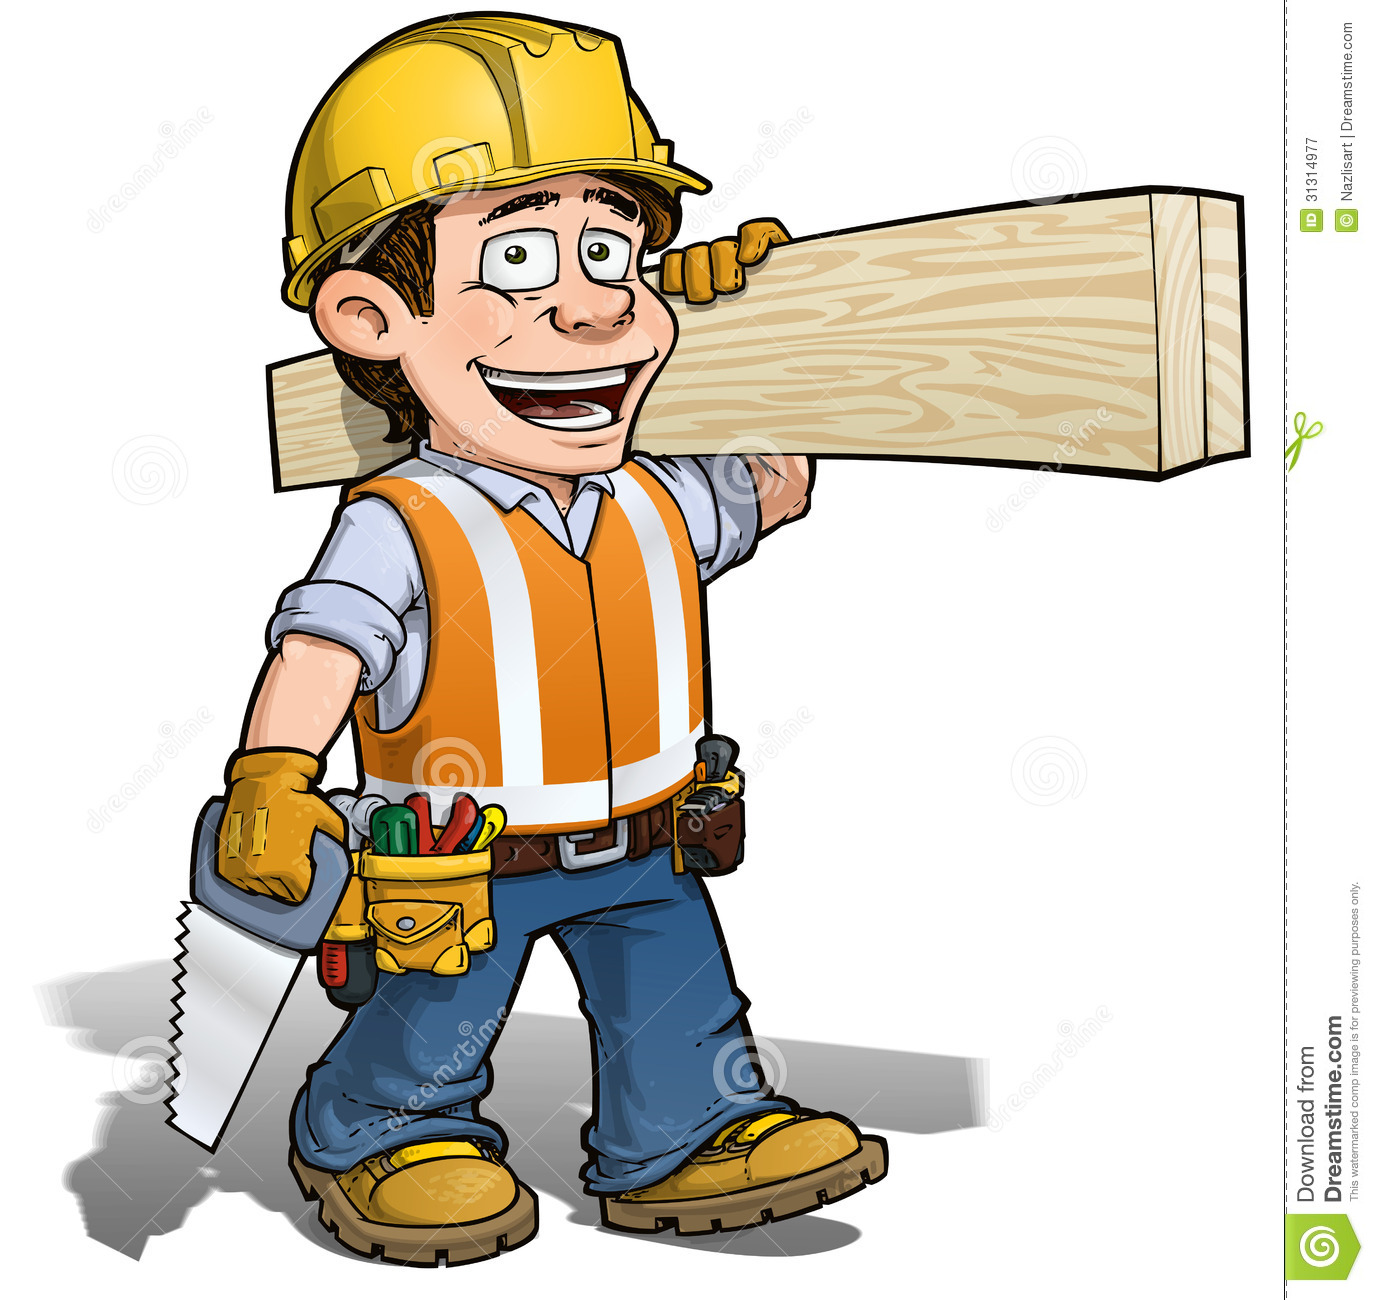 Cartoon Illustration Of A Construction Worker